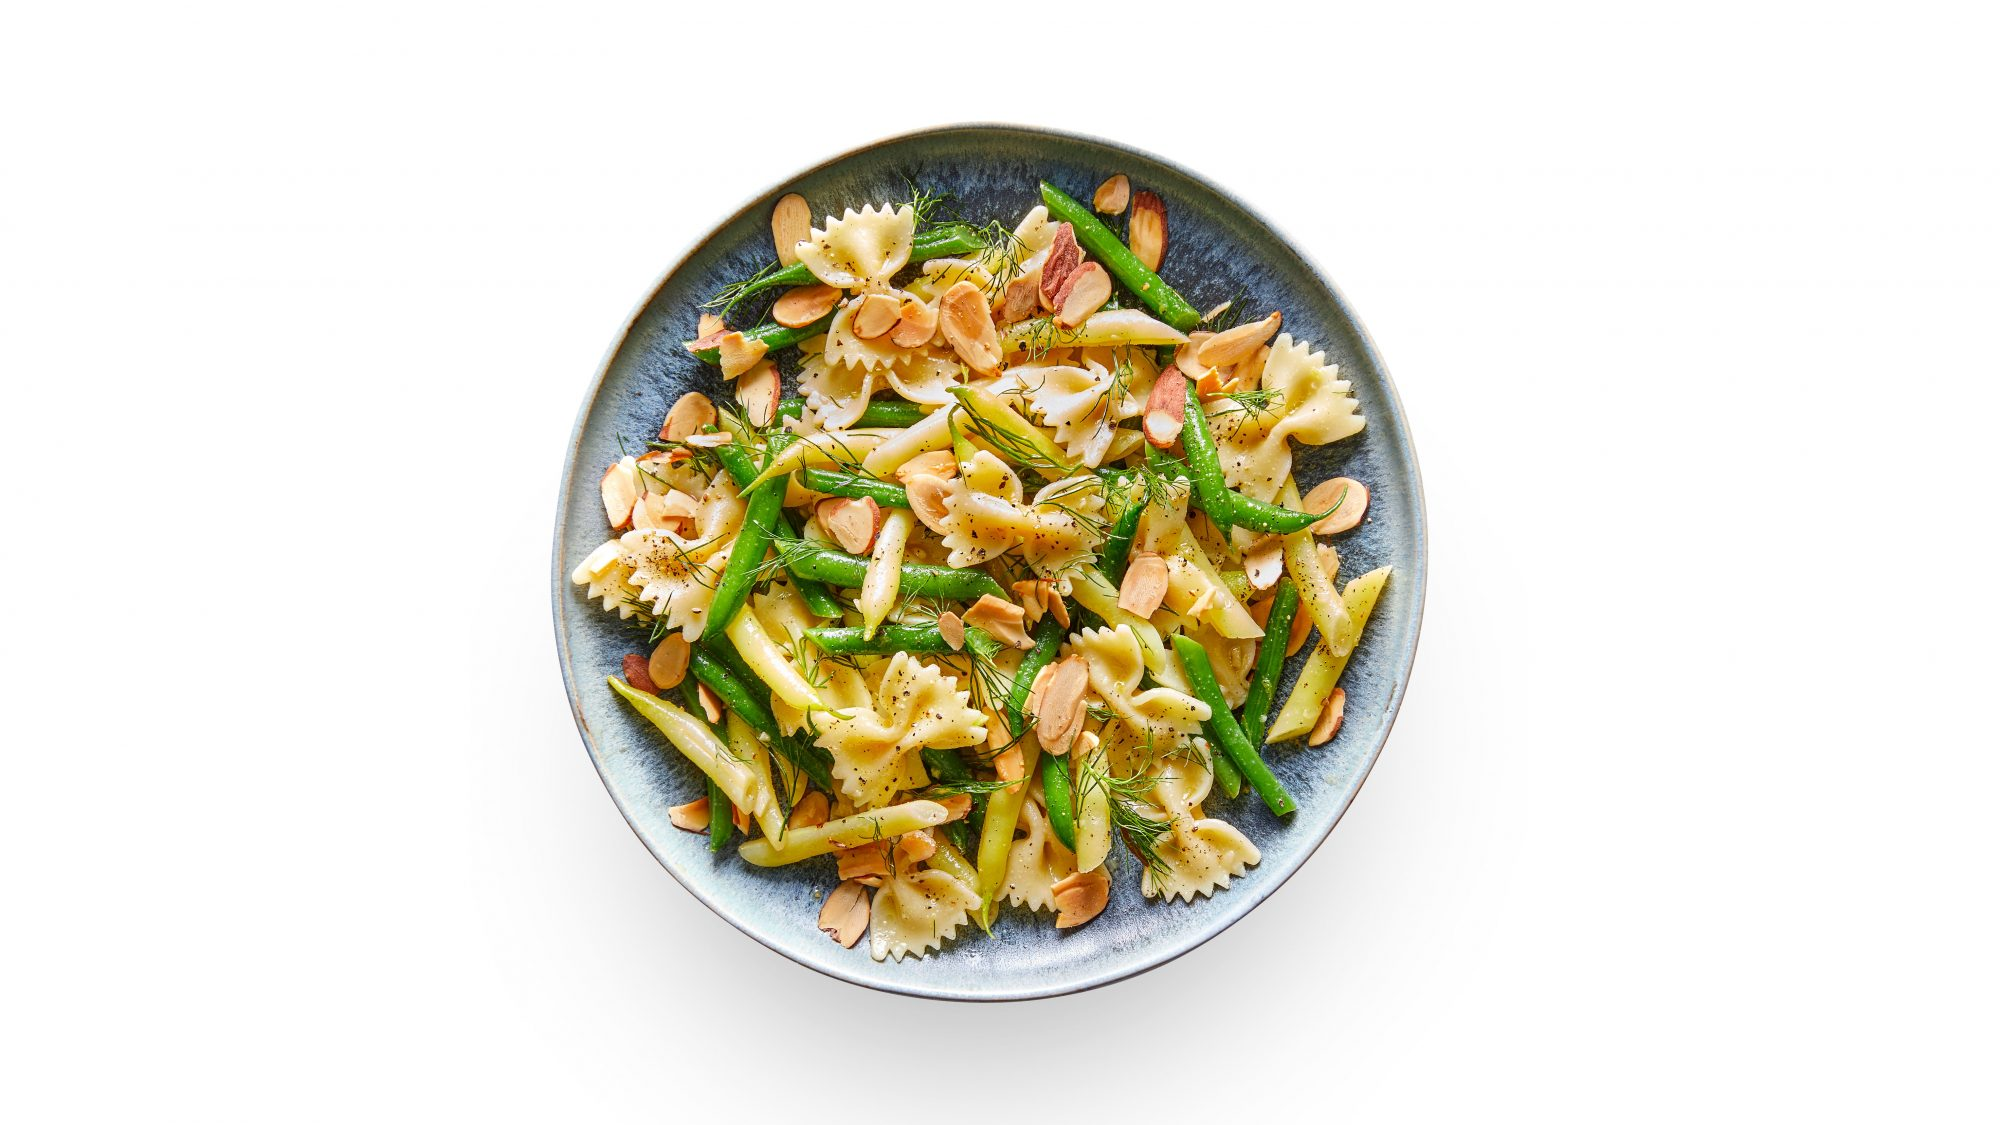 Dilly Bean Pasta Salad